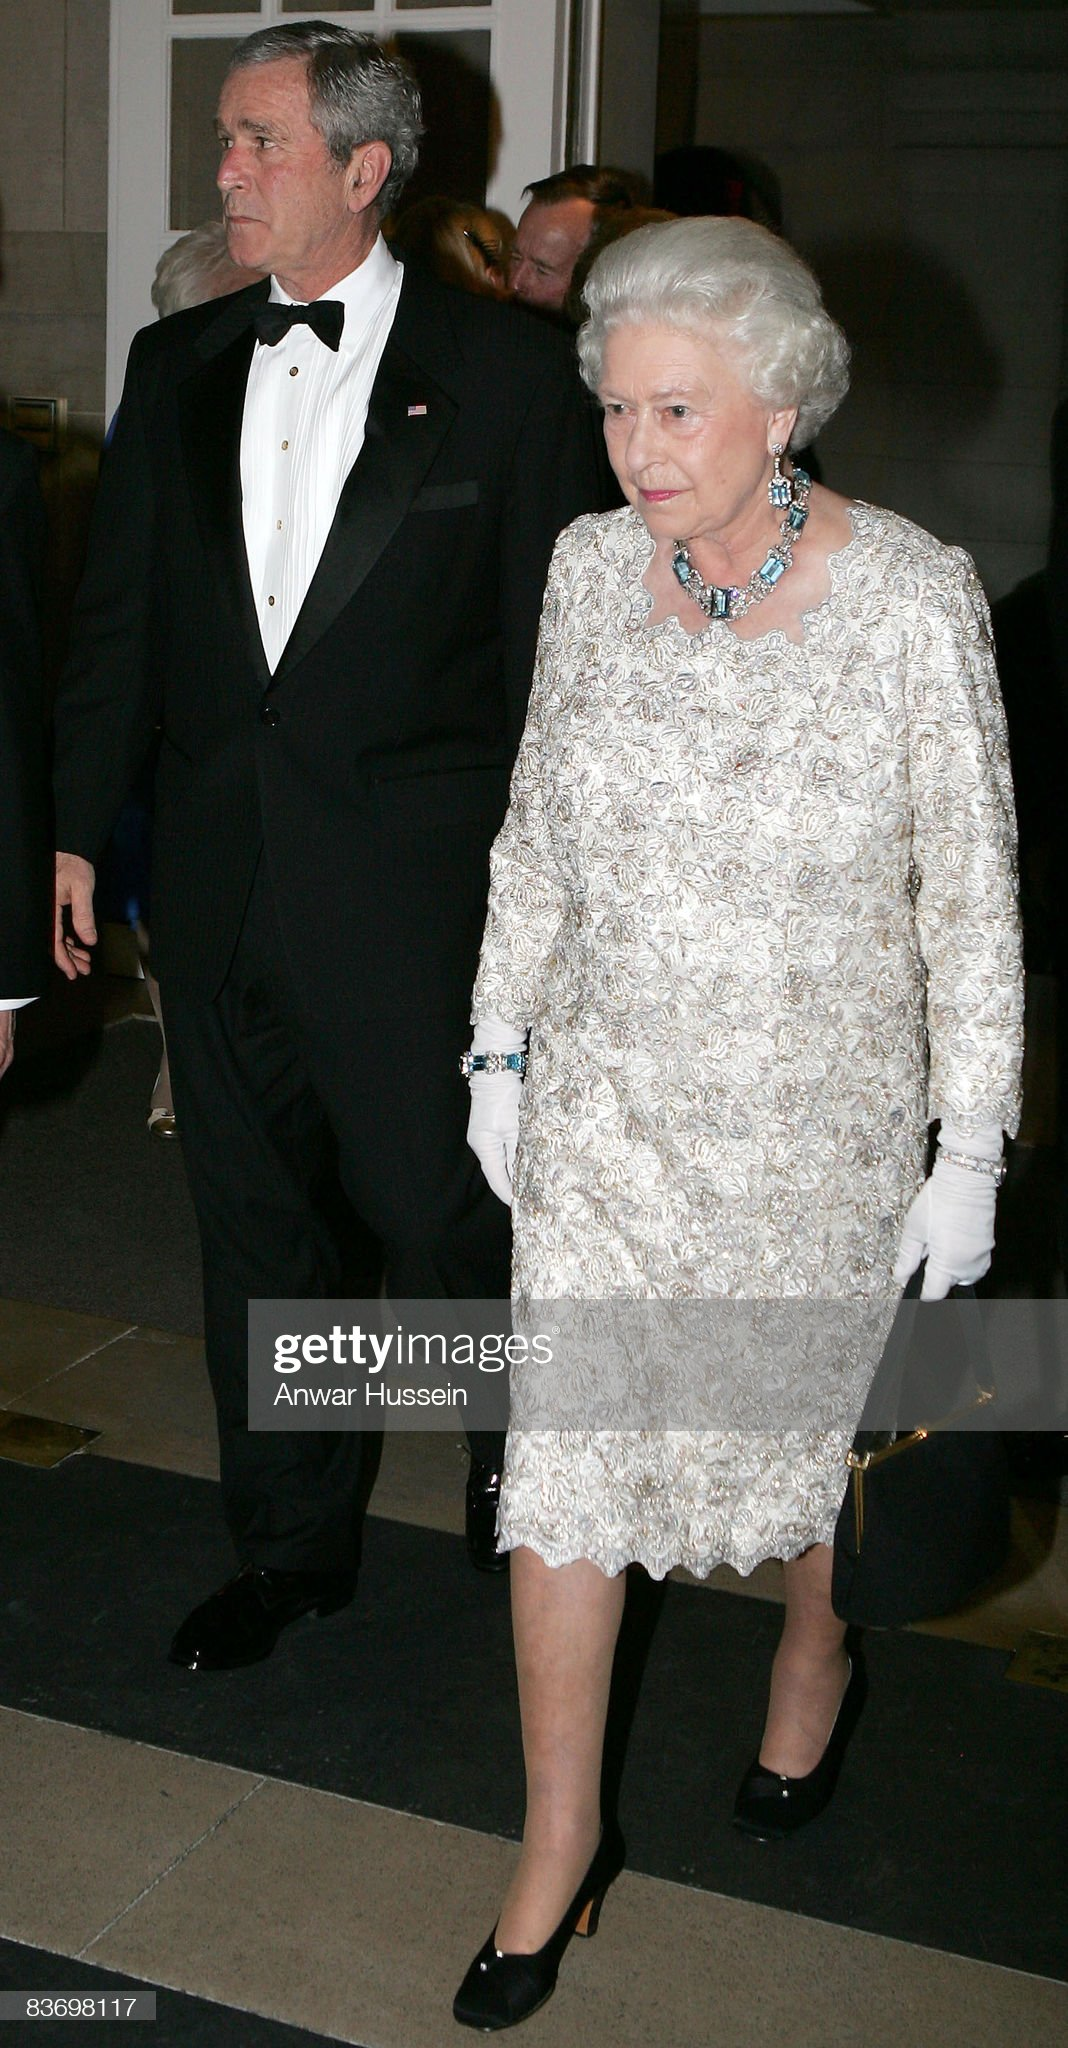 HRH Queen Elizabeth ll attends a dinner at the British Ambassador's Residence in Washington DC : News Photo